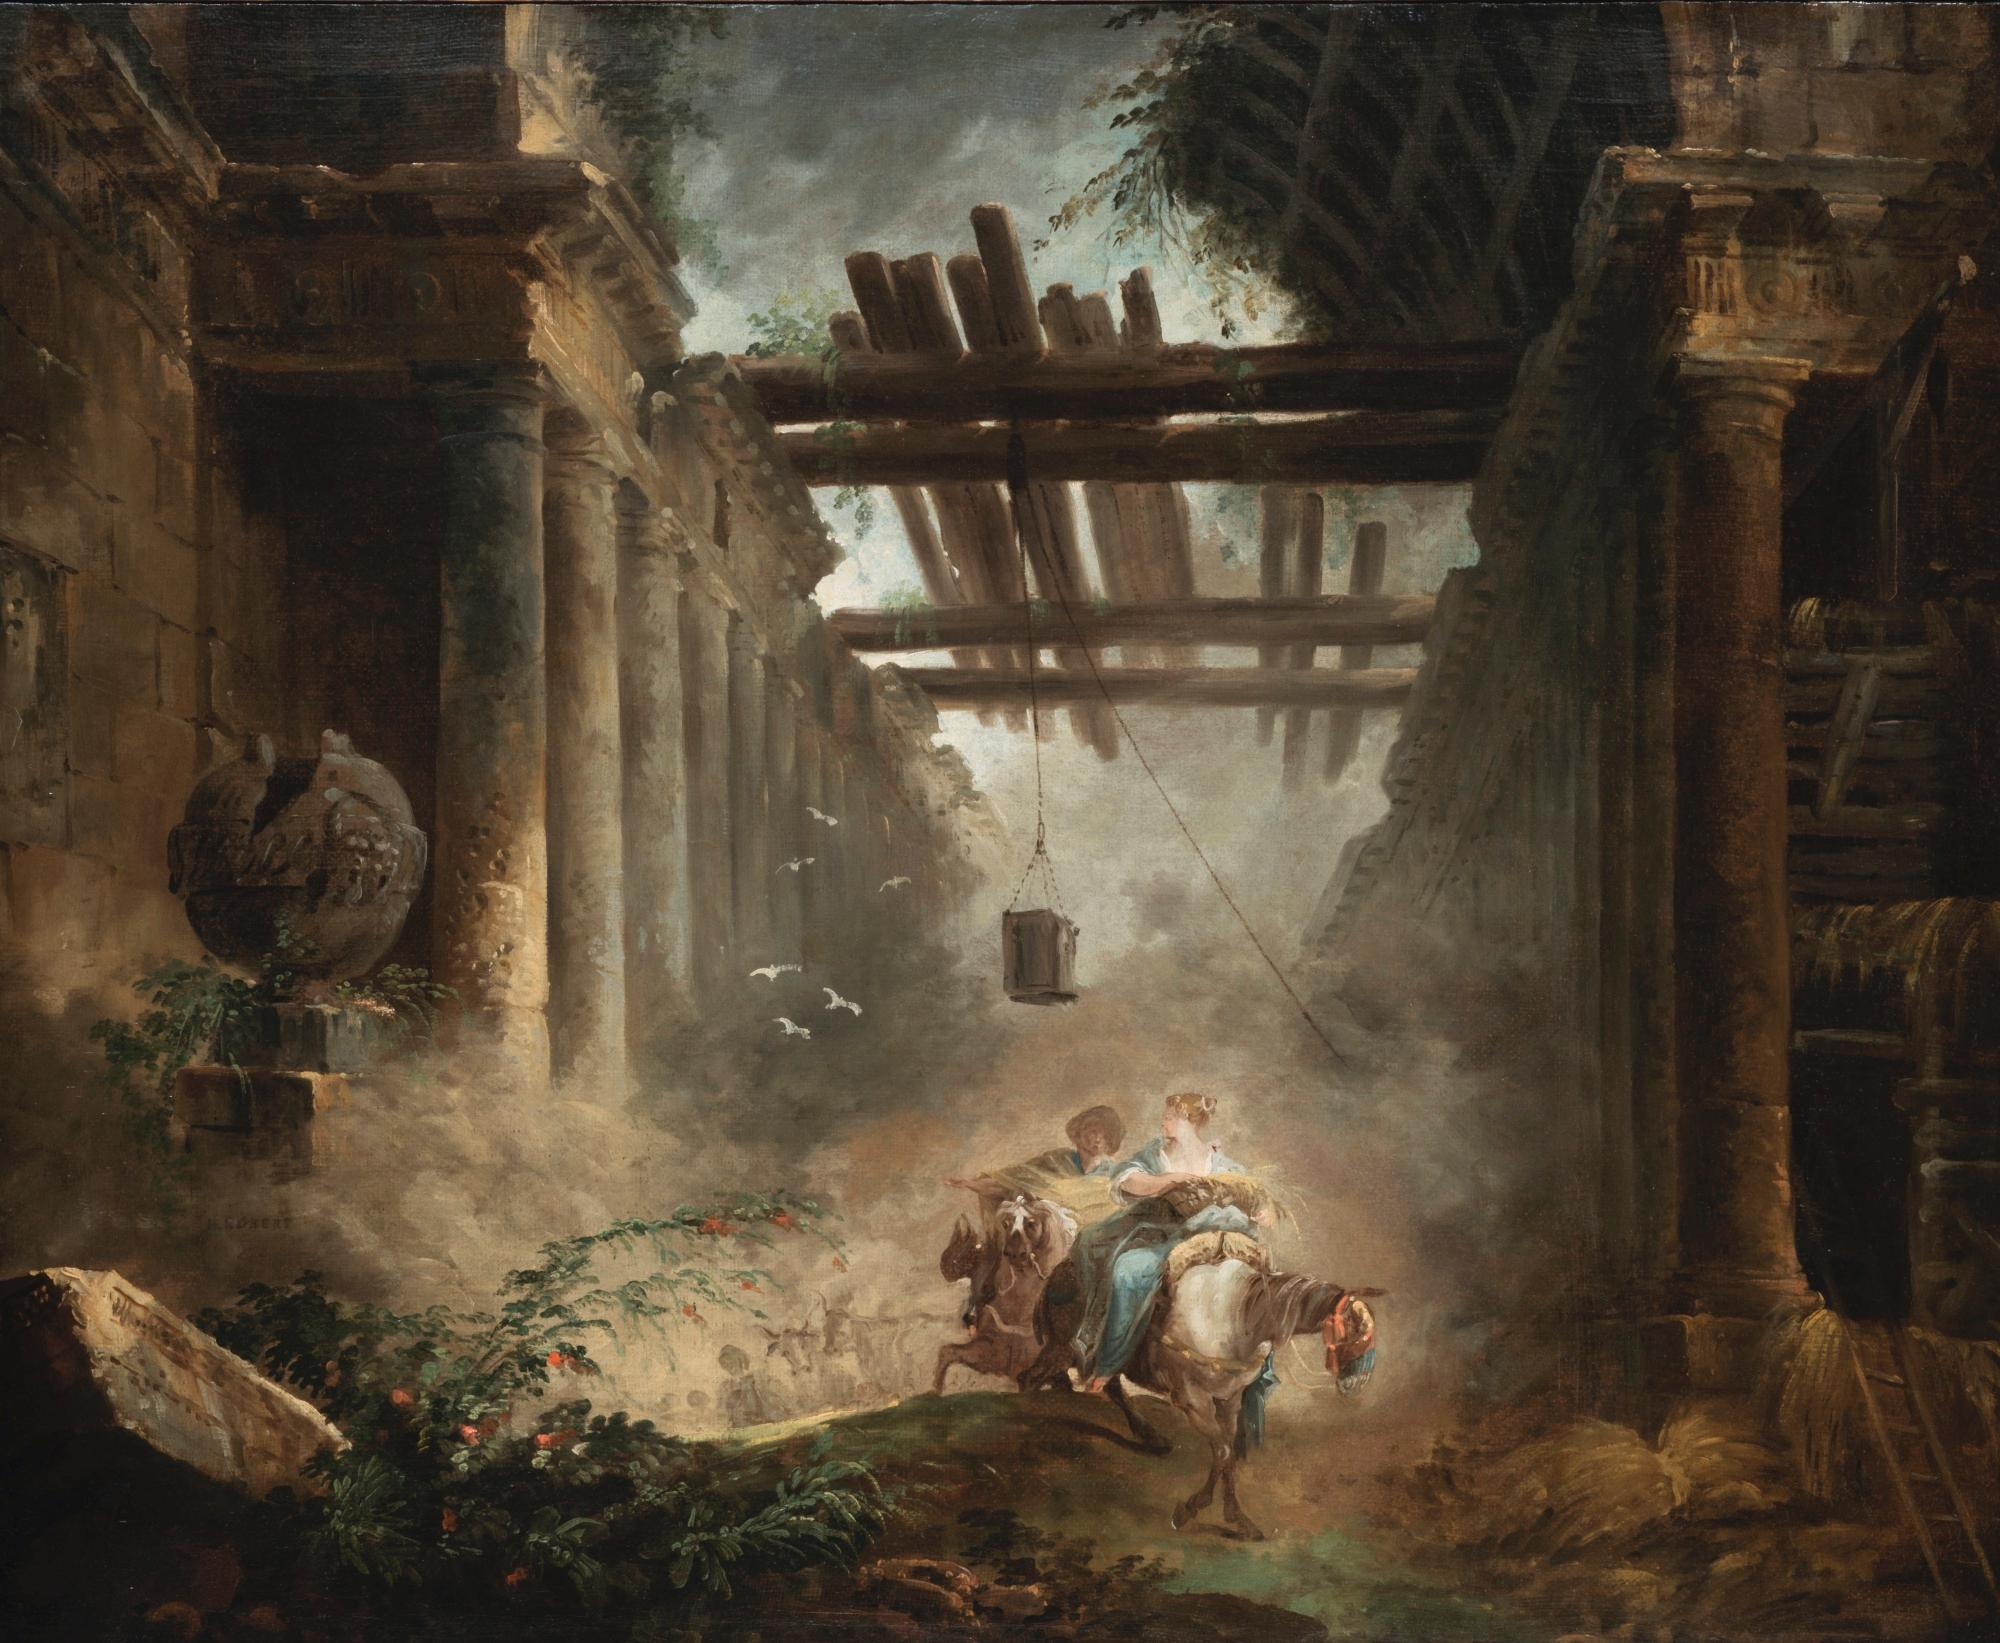 Figures on Horseback Departing a Ruined, Vaulted Building with Colonnades by Hubert Robert